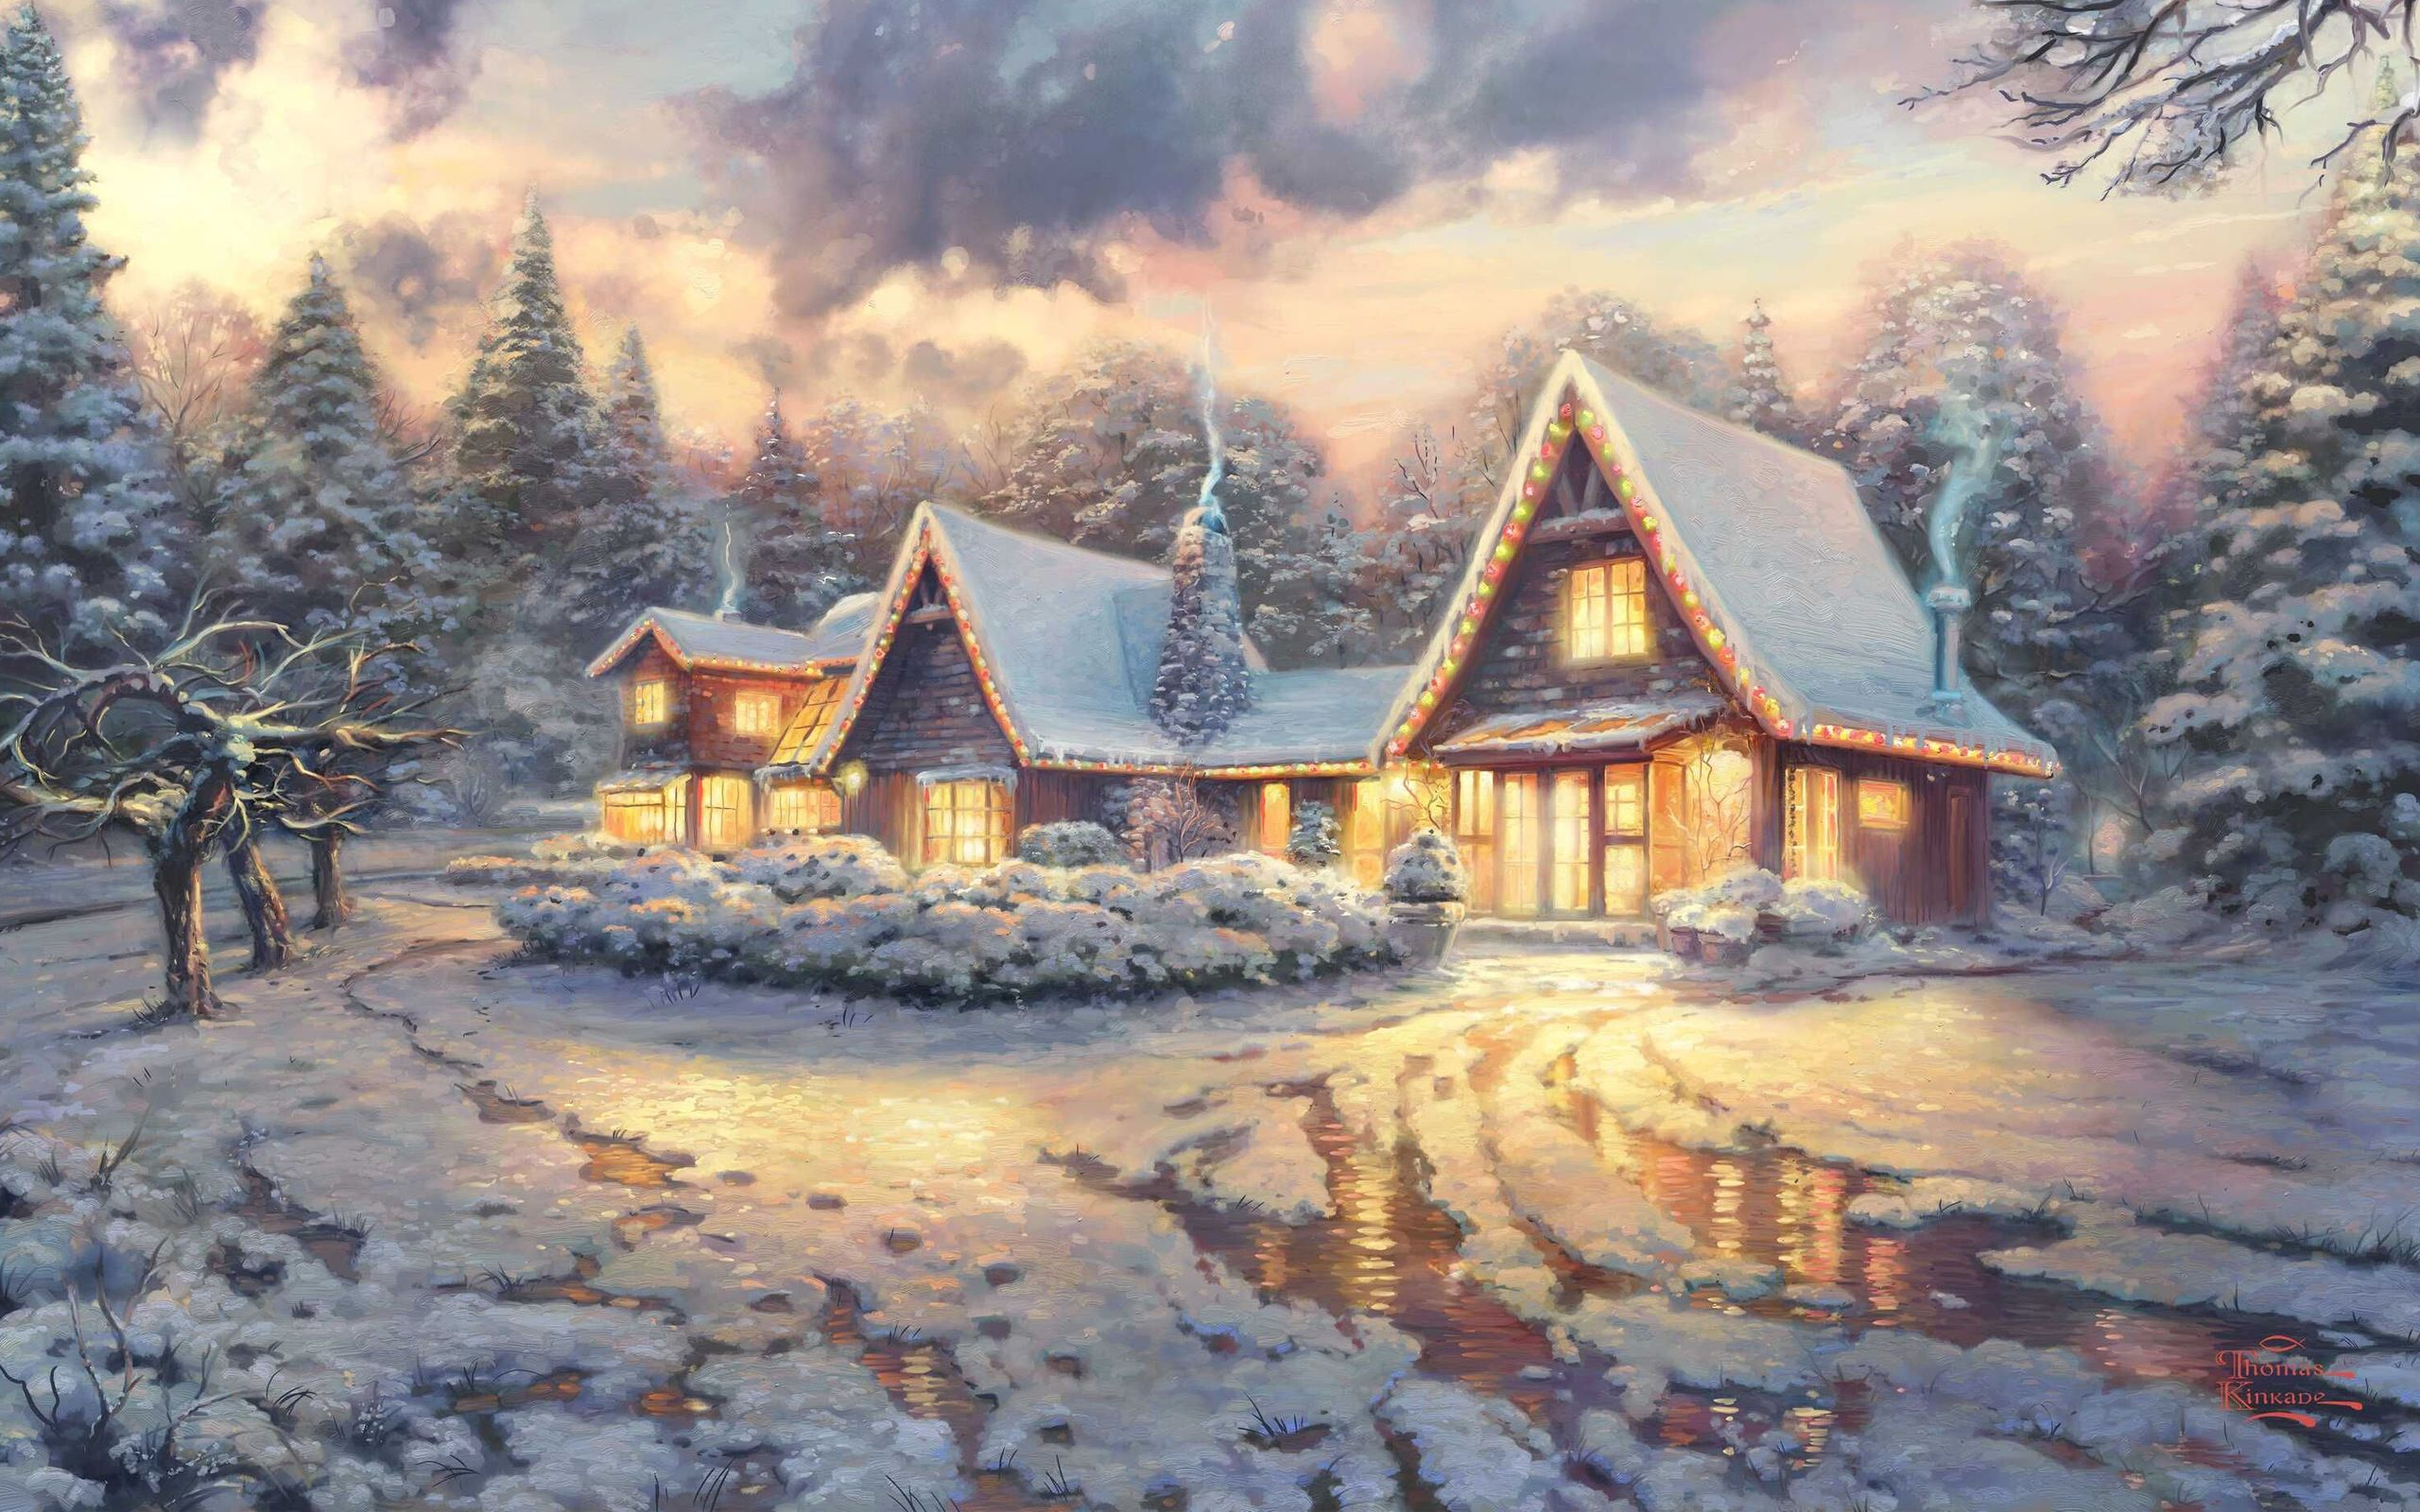 100 Holiday Desktop Backgrounds Hd Wallpapers: Misc. « Awesome Wallpapers